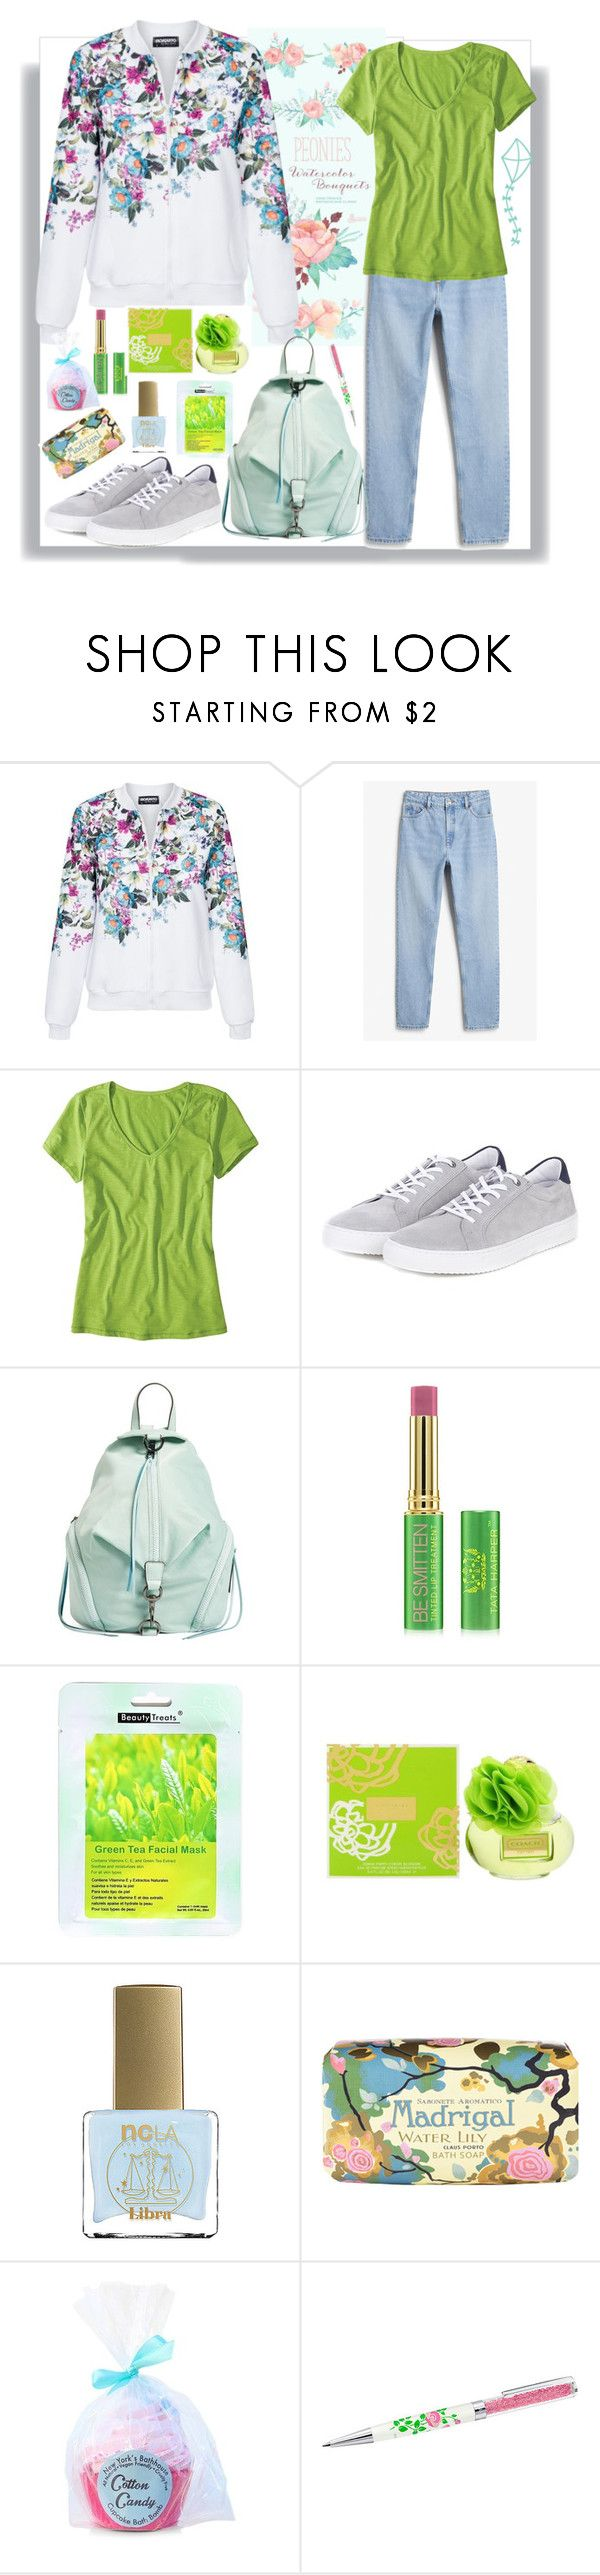 """""""Bomber Jacket"""" by natalyapril1976 on Polyvore featuring Mode, Monki, Horny Toad, Barbour, Rebecca Minkoff, Tata Harper, Coach, ncLA, Claus Porto und Forever 21"""